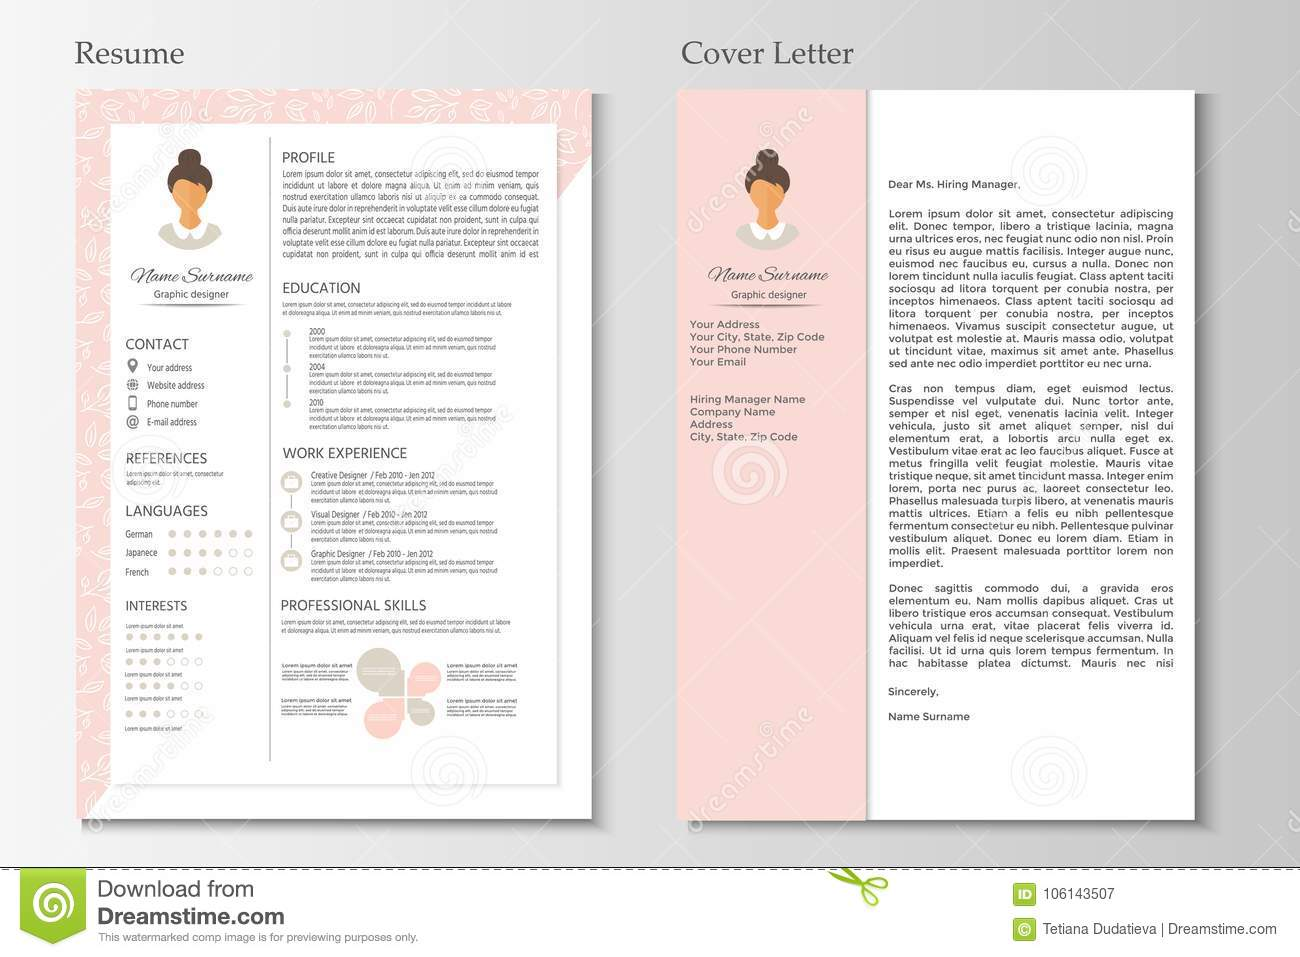 feminine resume and cover letter with infographic design stock vector illustration of Resume Unique Resume Cover Letter